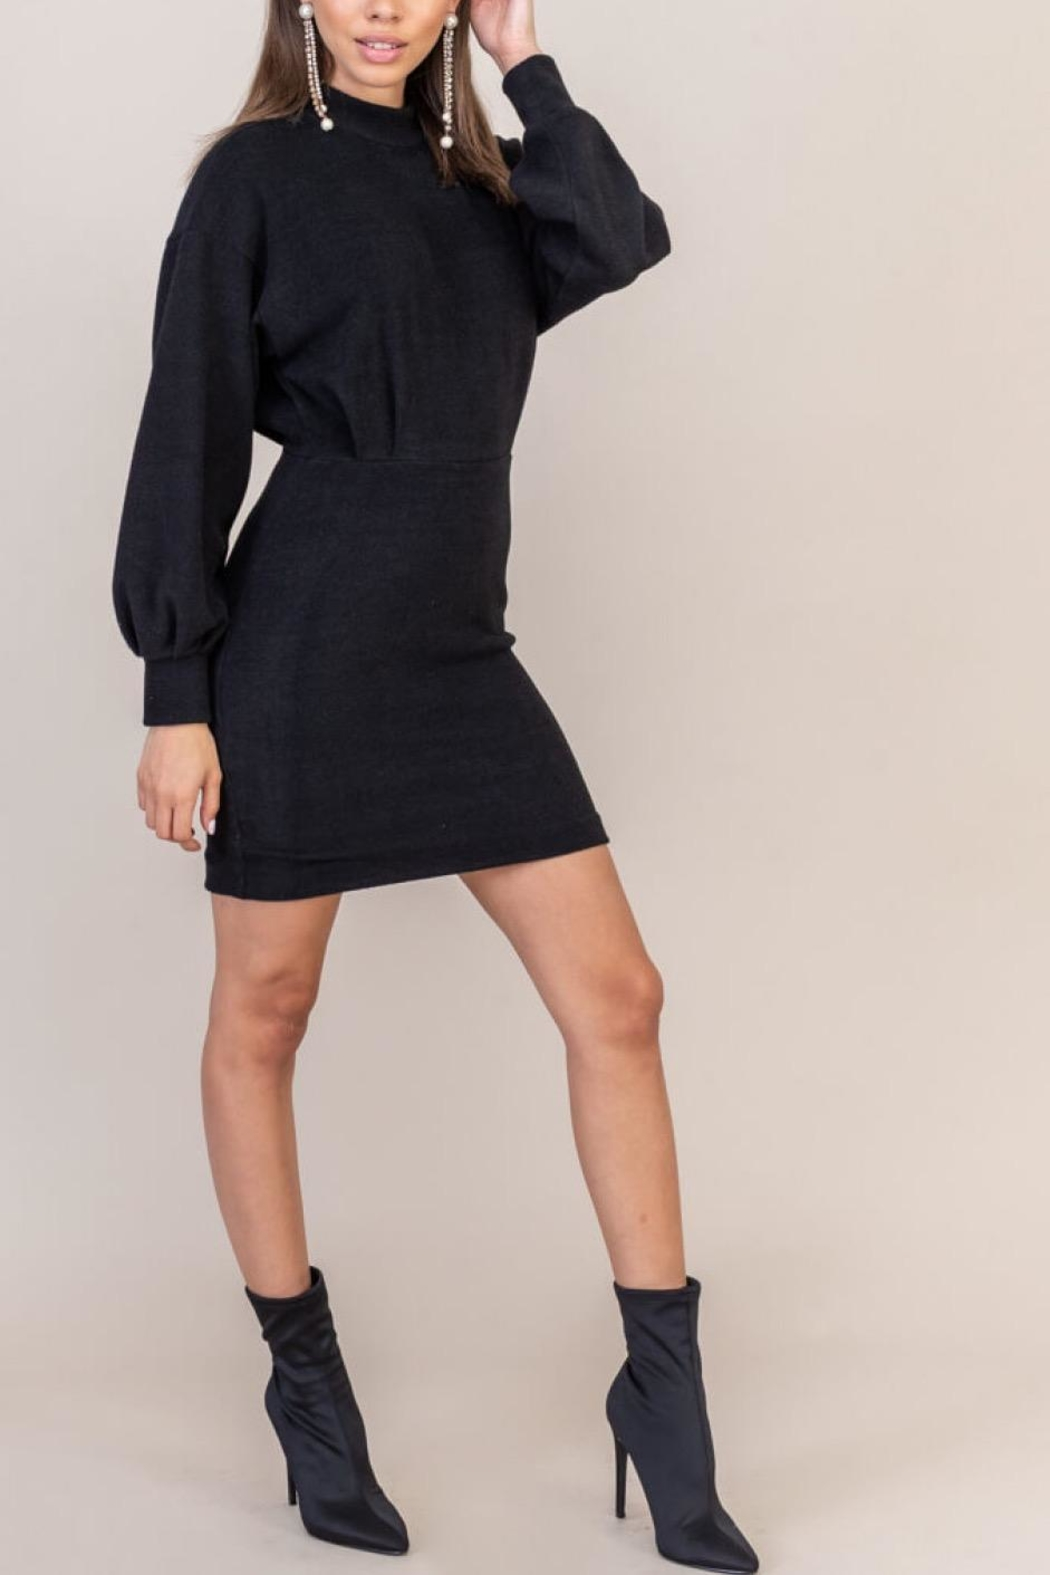 Lush Clothing  Black Sweater Dress - Side Cropped Image